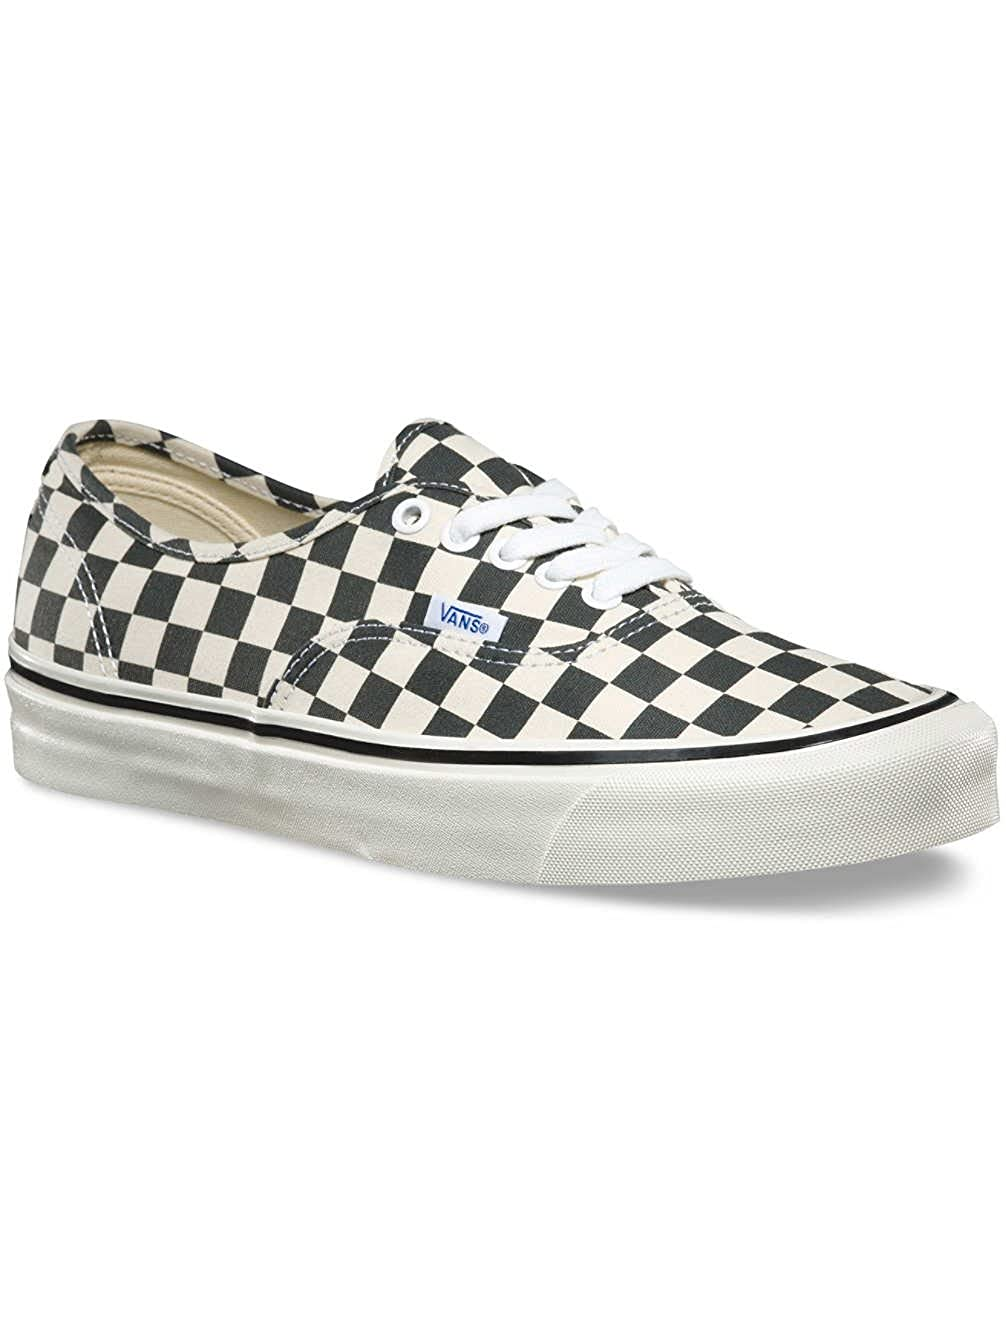 Vans Authentic 44 DX (Anaheim Factory) Sneakers Black Check Size 4 Men 5.5  Women  Buy Online at Low Prices in India - Amazon.in 20d060880